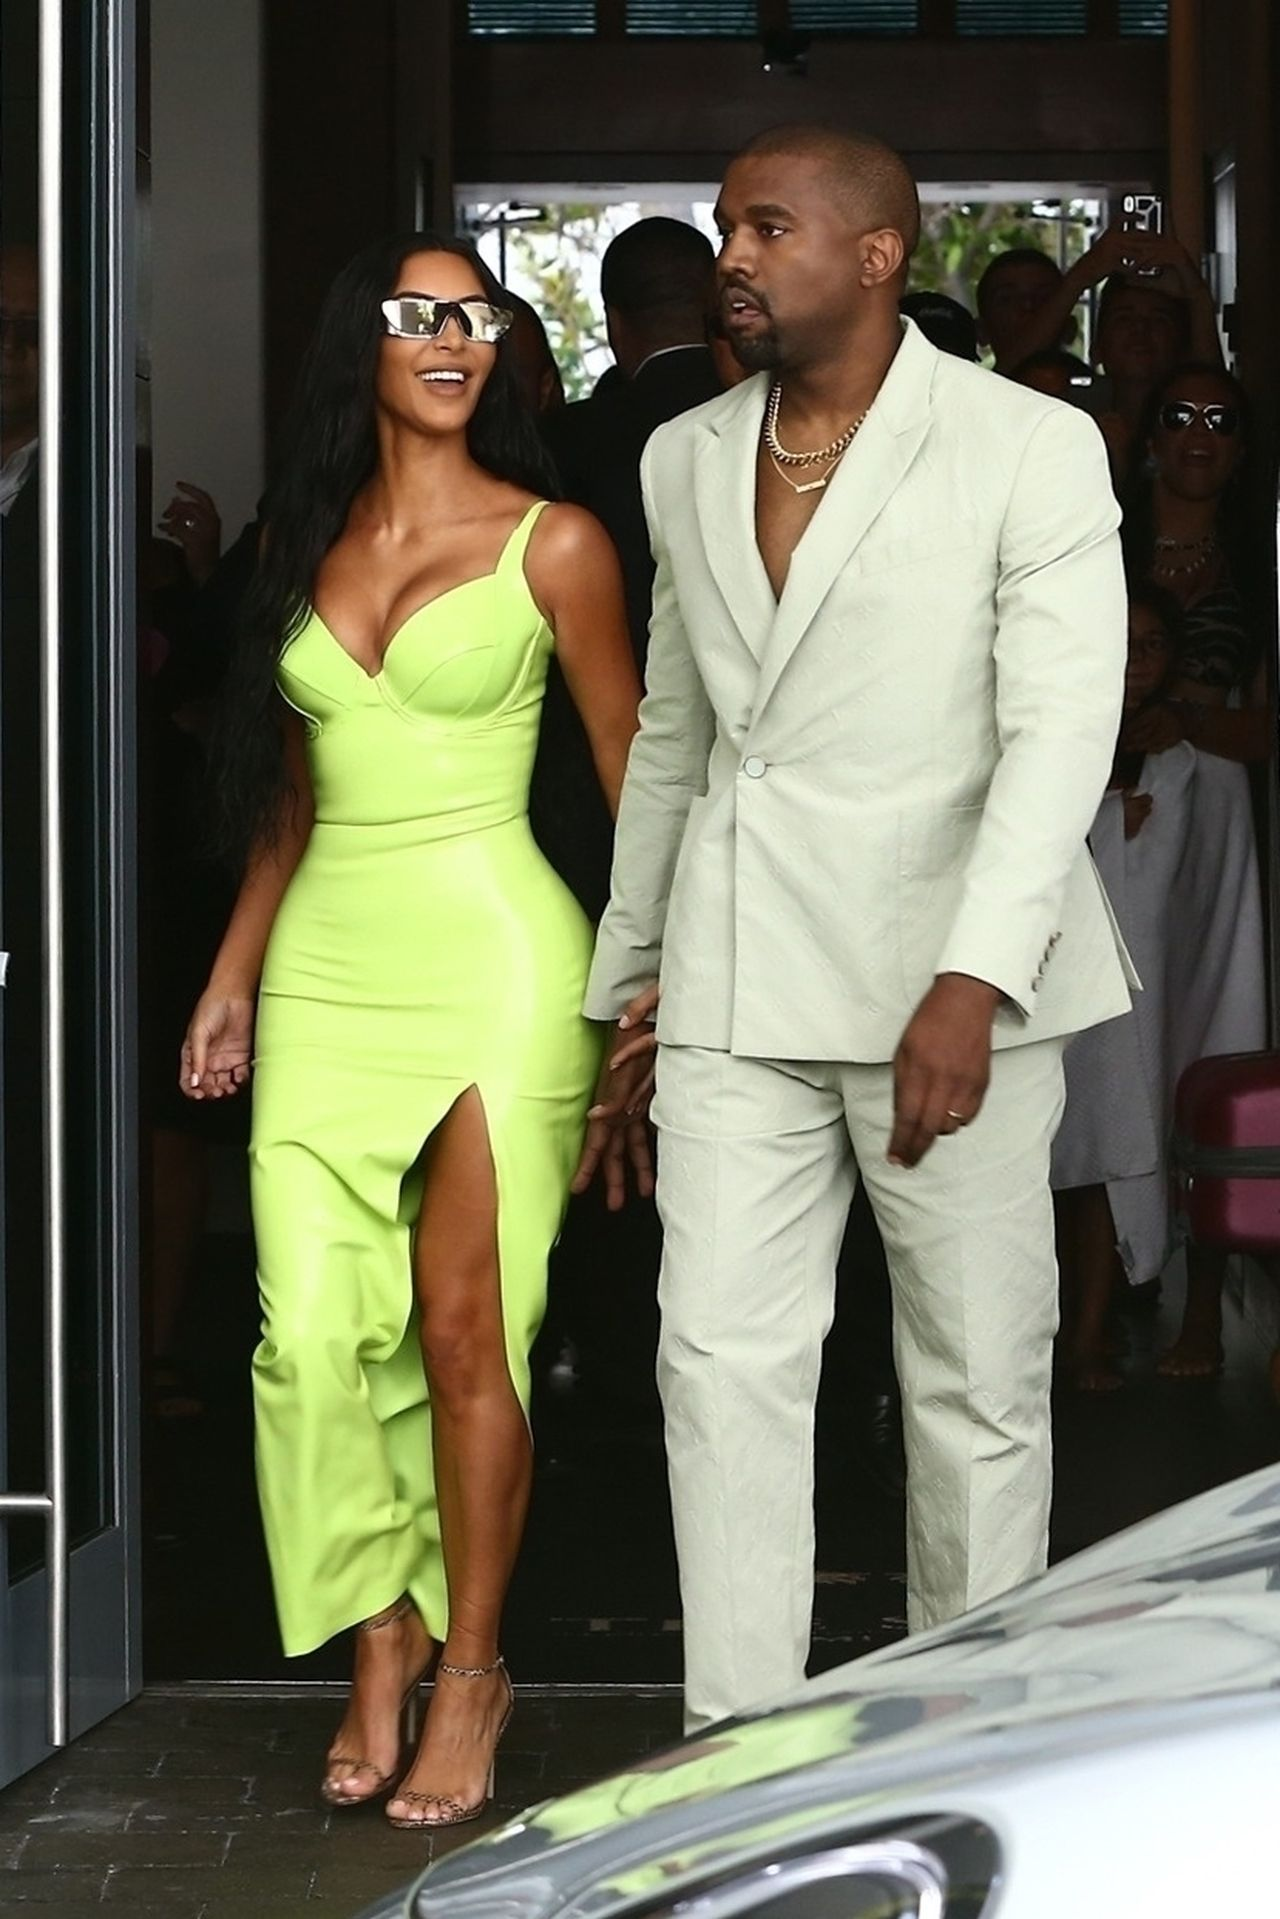 Kim Kardashian and Kanye West show off her unique wedding guest looks Kim Kardashian, Kanye West